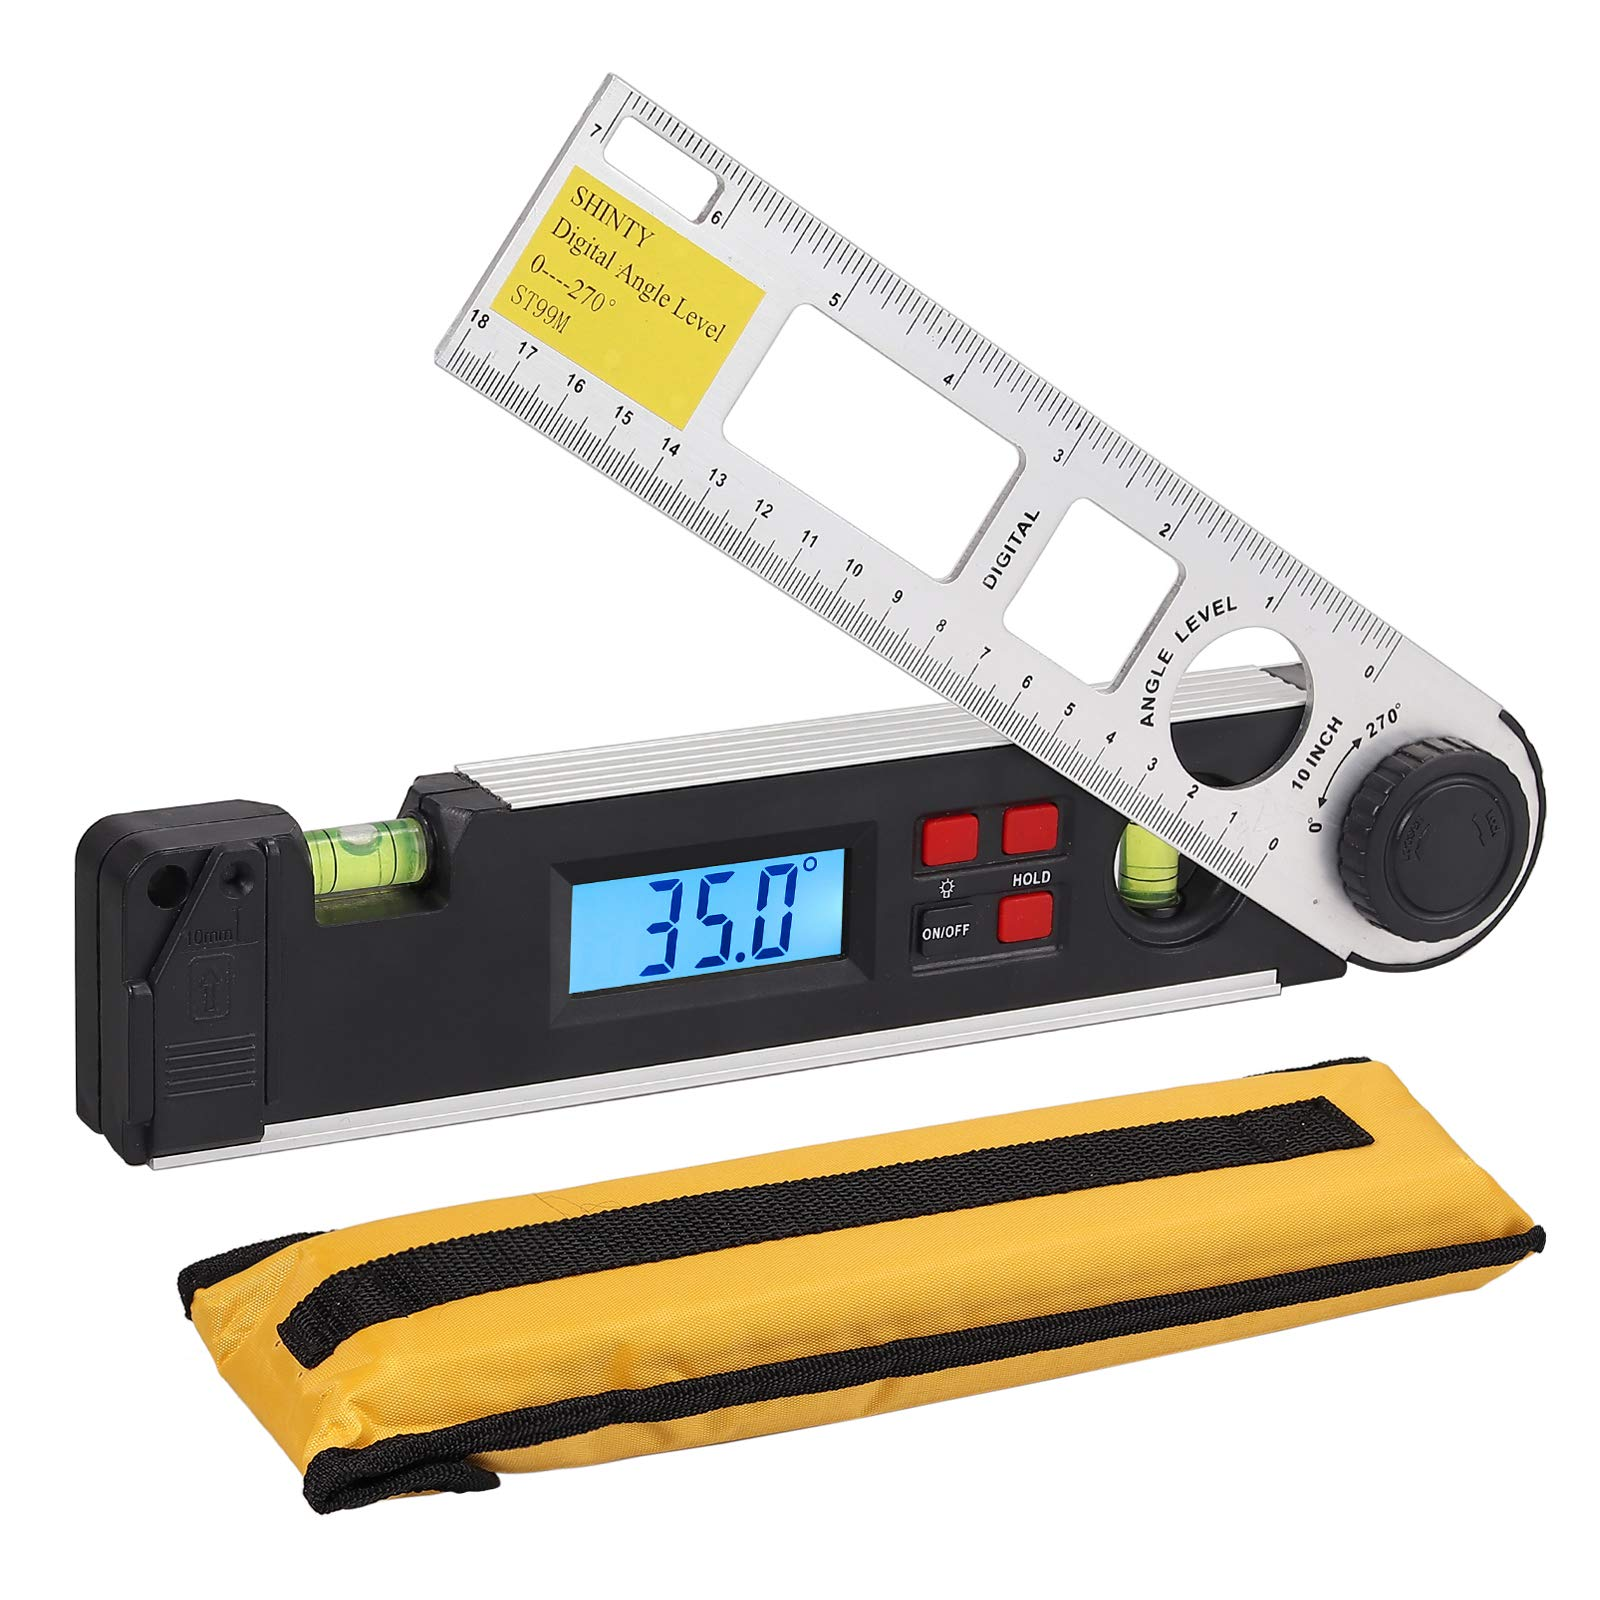 Proster Angle Gauge 0~270°Digital LCD Inclinometer Protractor Spirit Level Angle Finder Gauge Meter with Level Bubble